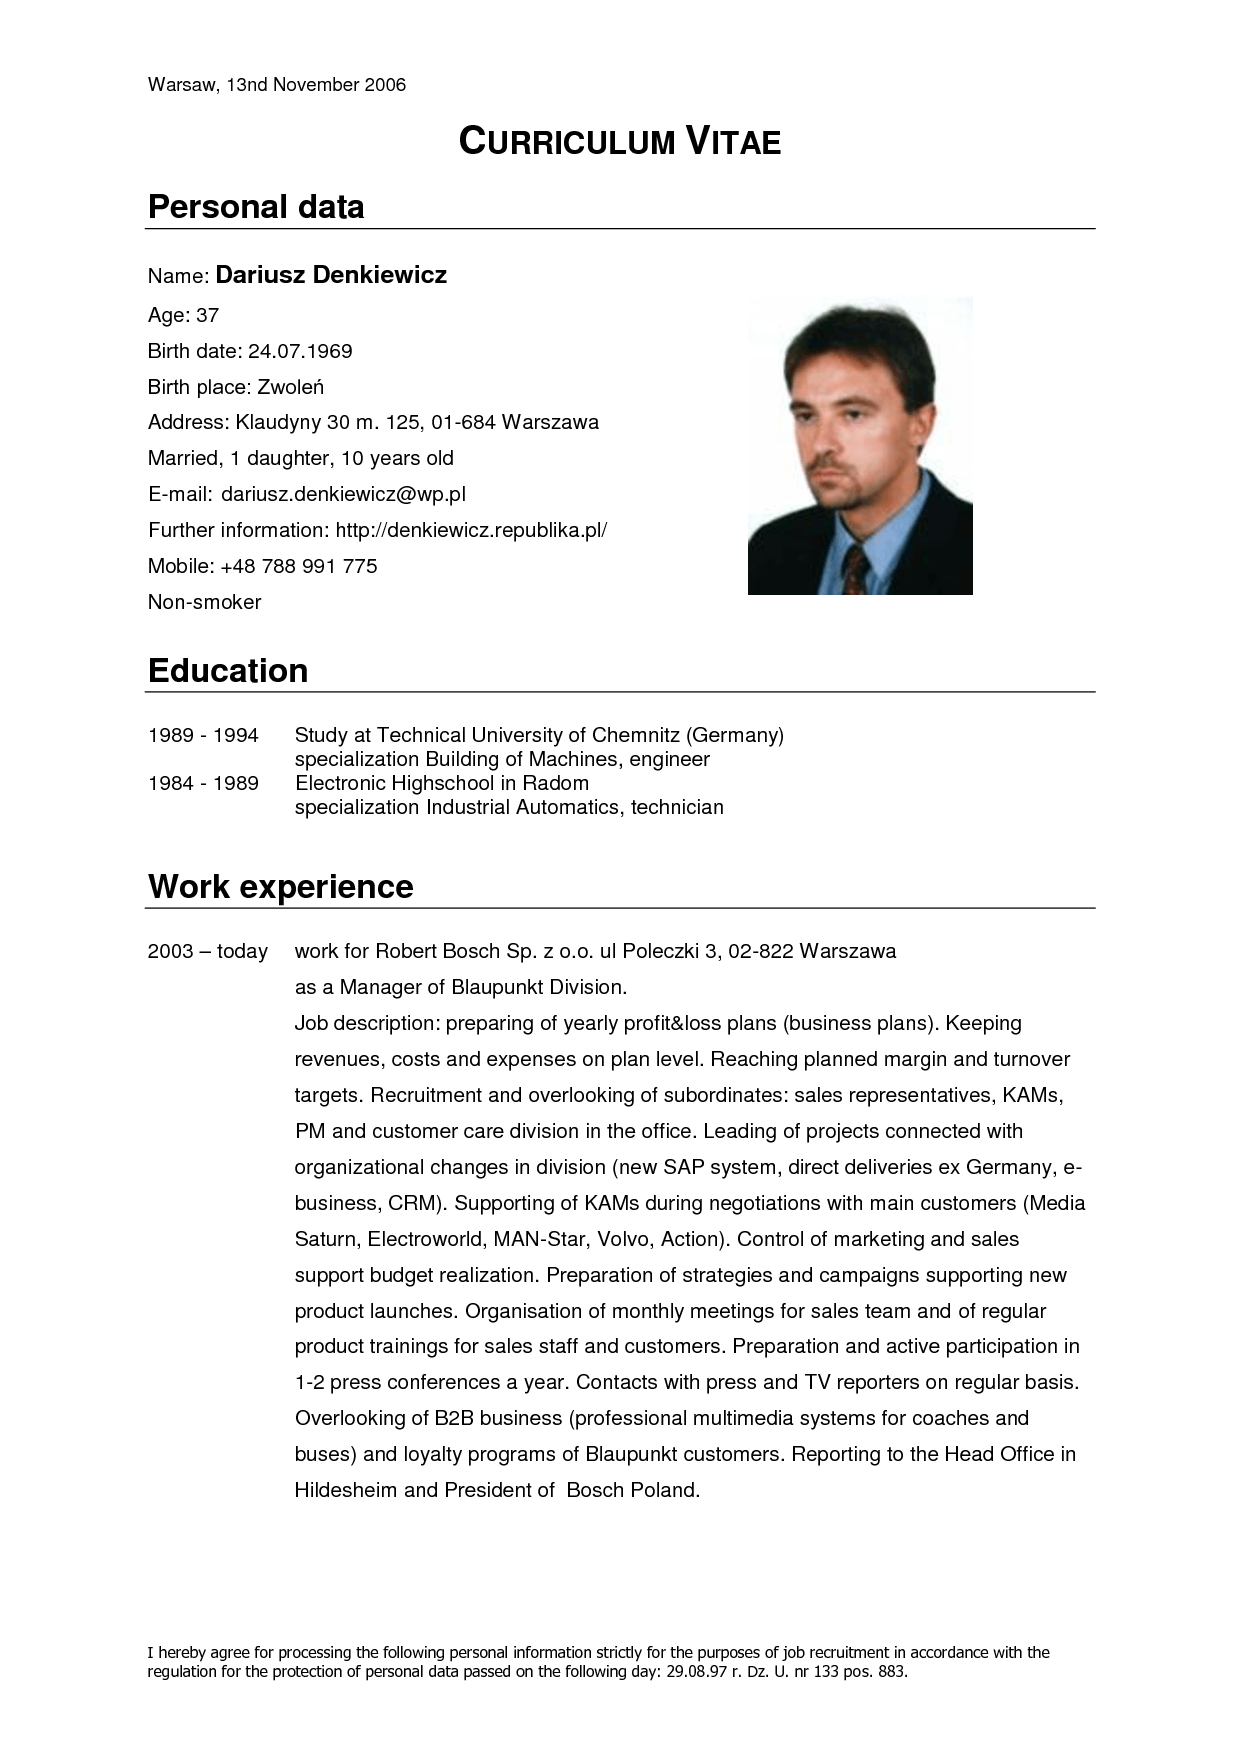 Resume Format For Overseas Job Curriculum Vitae Resume Cv Computer And Auto Control